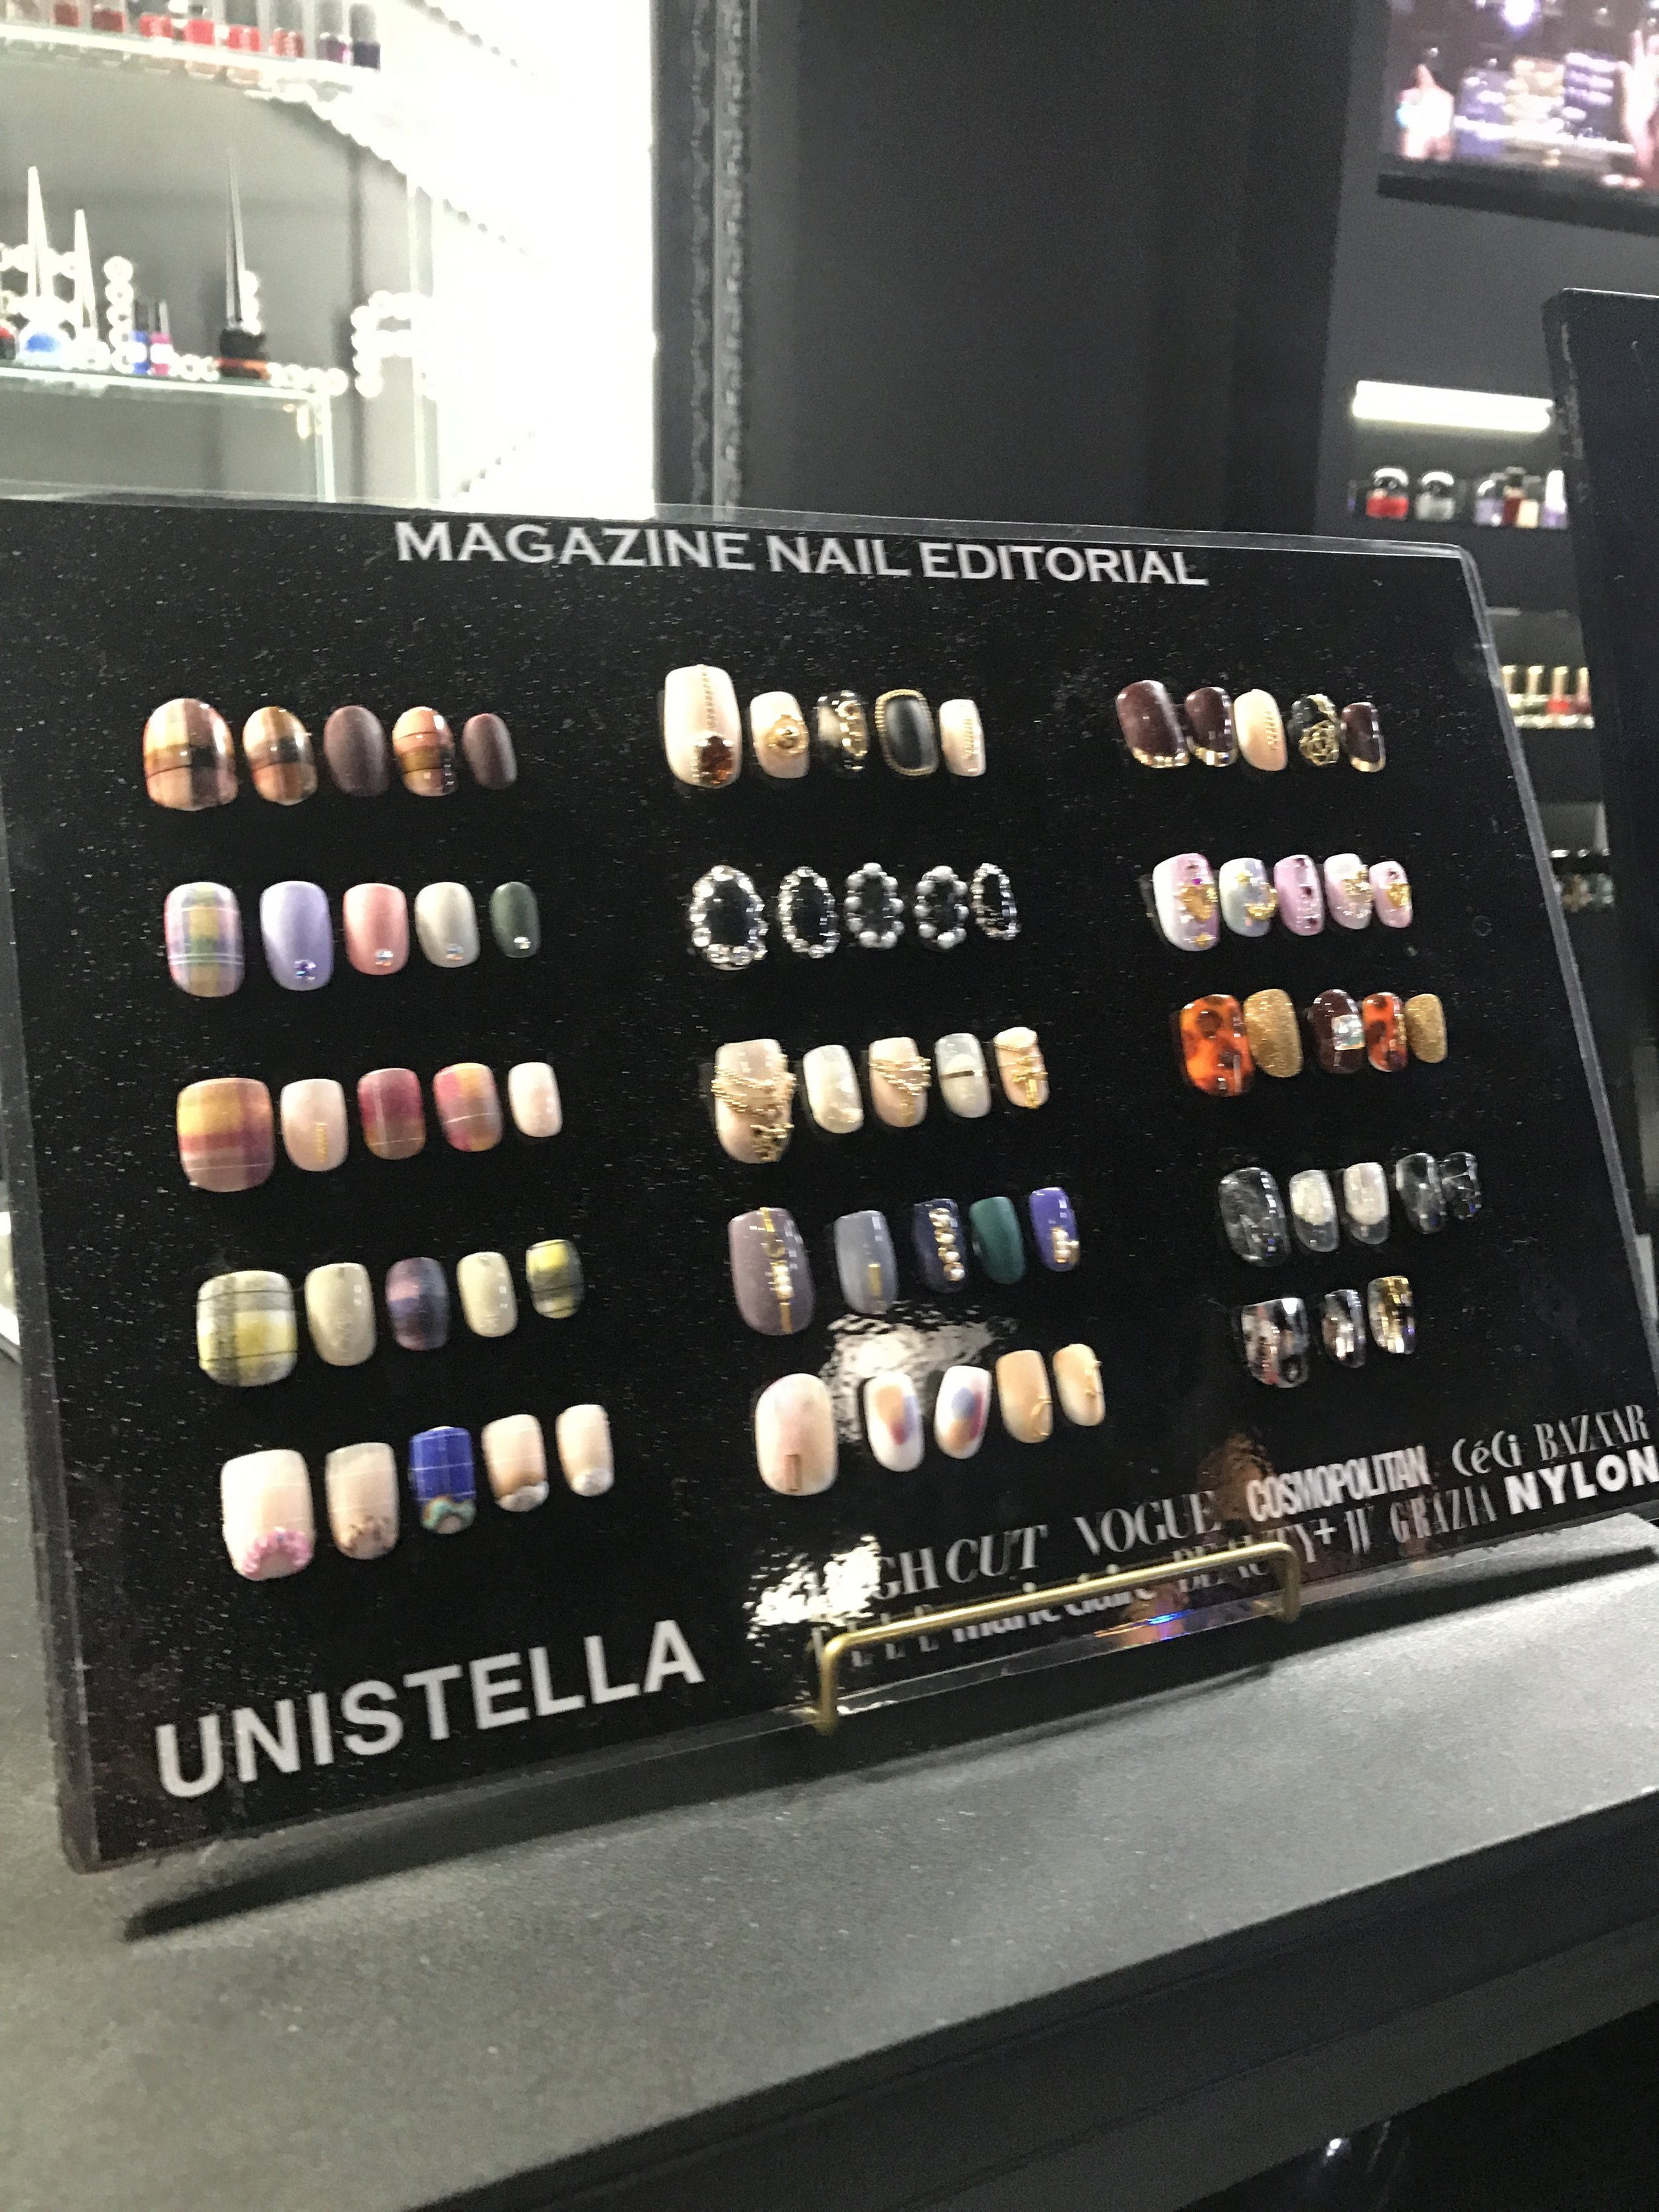 One of many nail design plaques in the store, I was tempted to do plaid, then pearls...it was difficult to choose from so many amazing designs